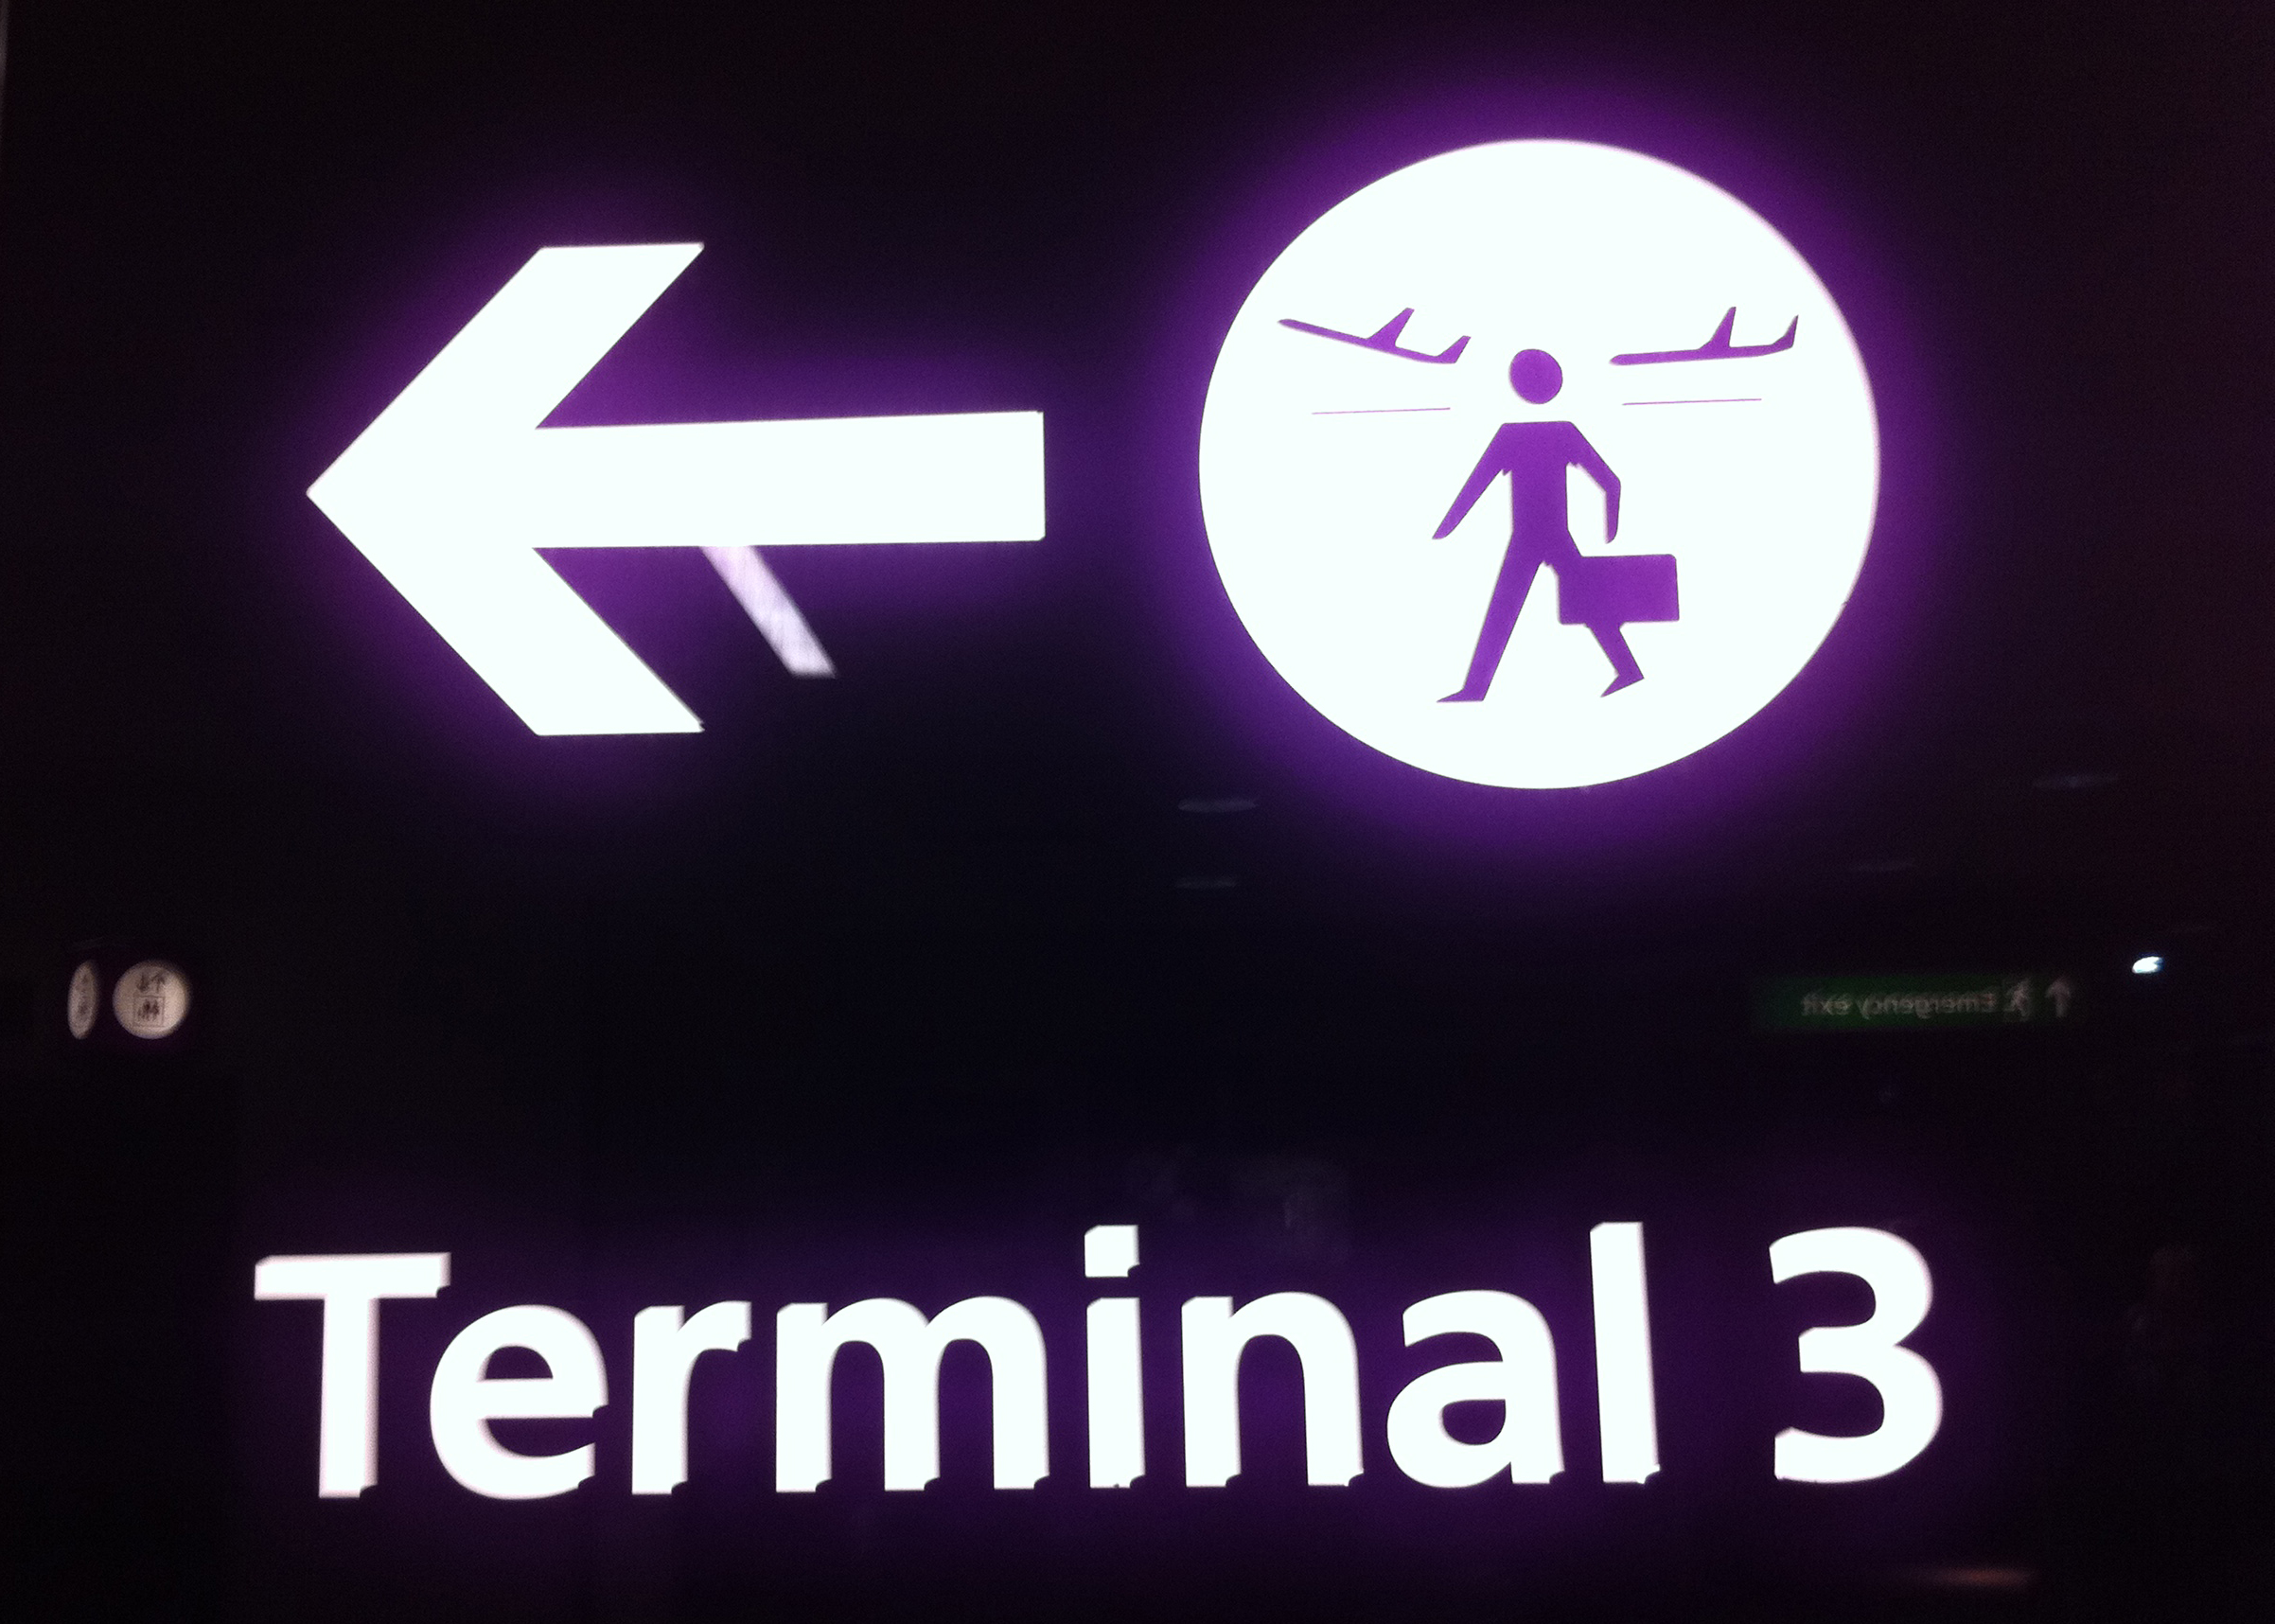 Connecting to terminal 3 at London Heathrow